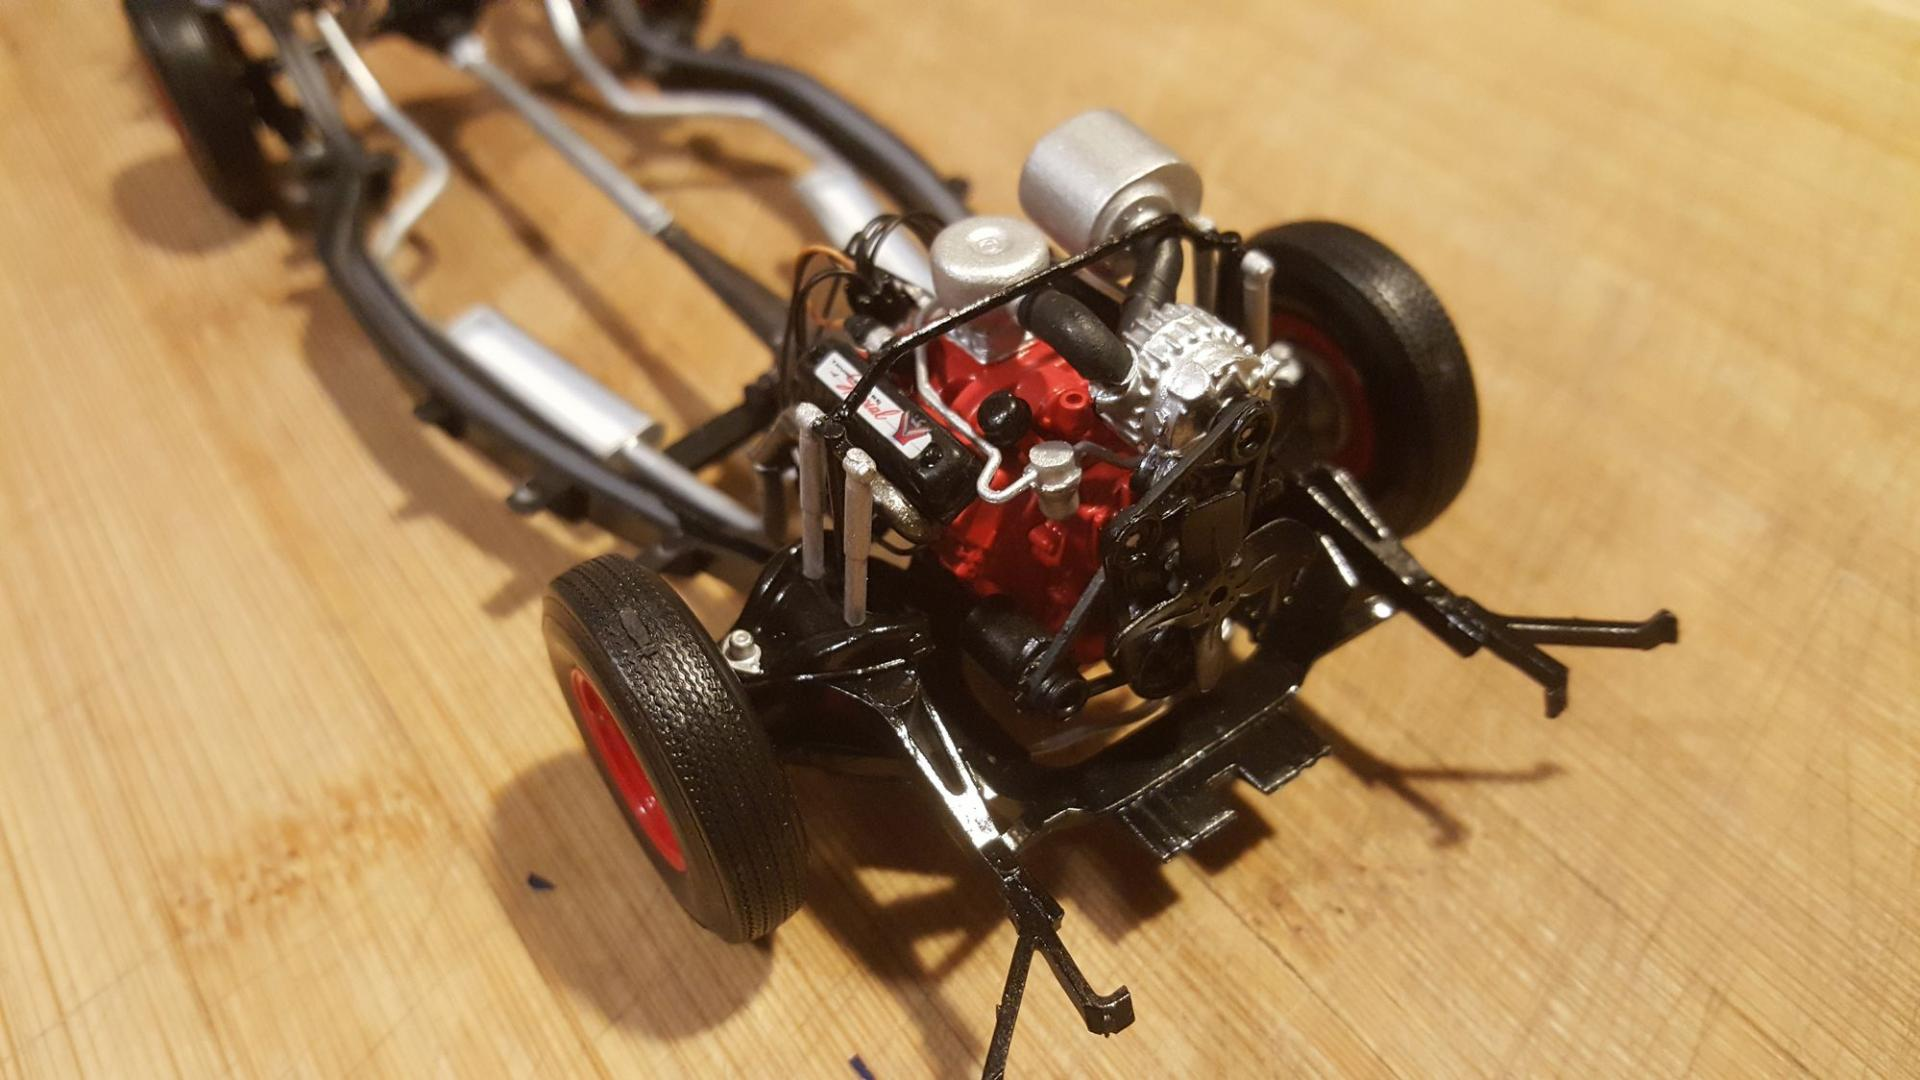 Chassis - Assembled - 3.jpg